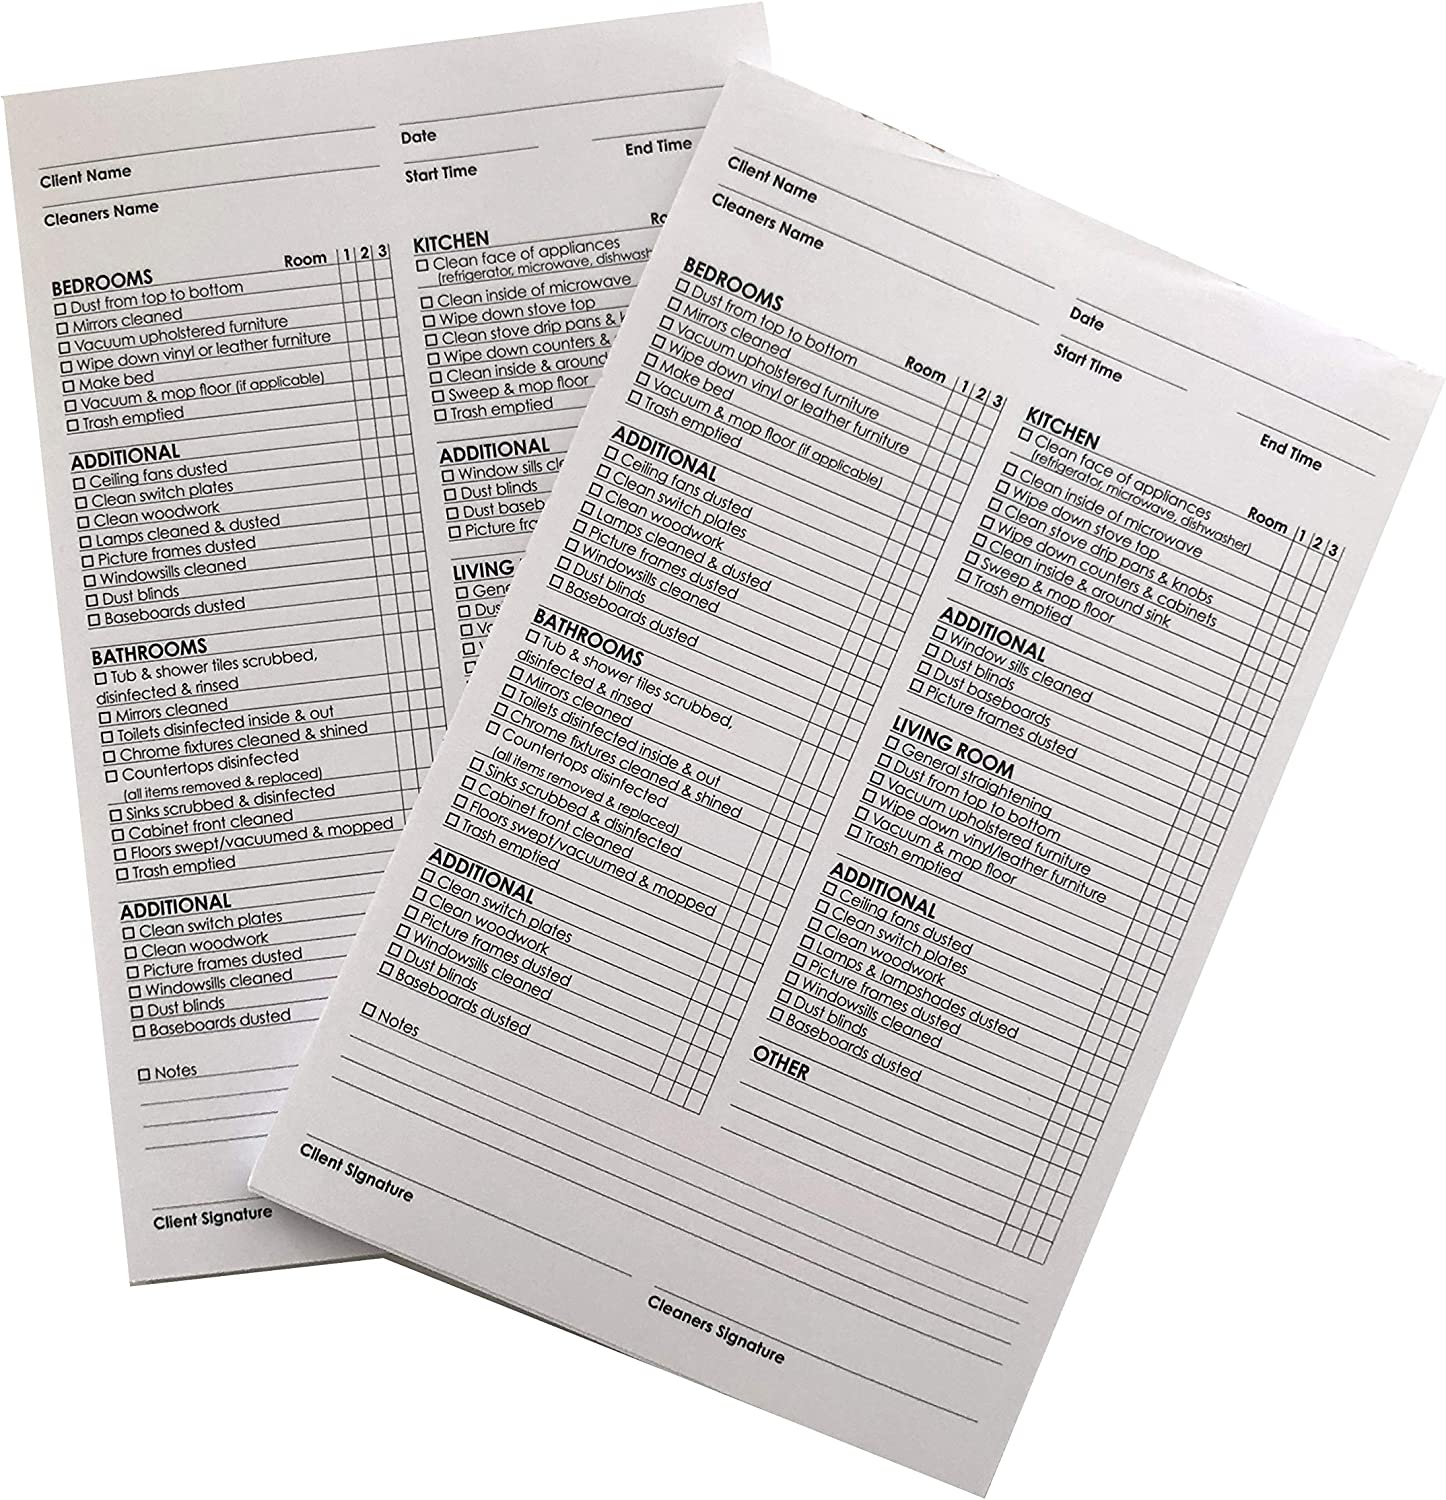 Housekeeping Maid Checklist 2 Pack. Fantastic for Maid Services Room by Room and Chores